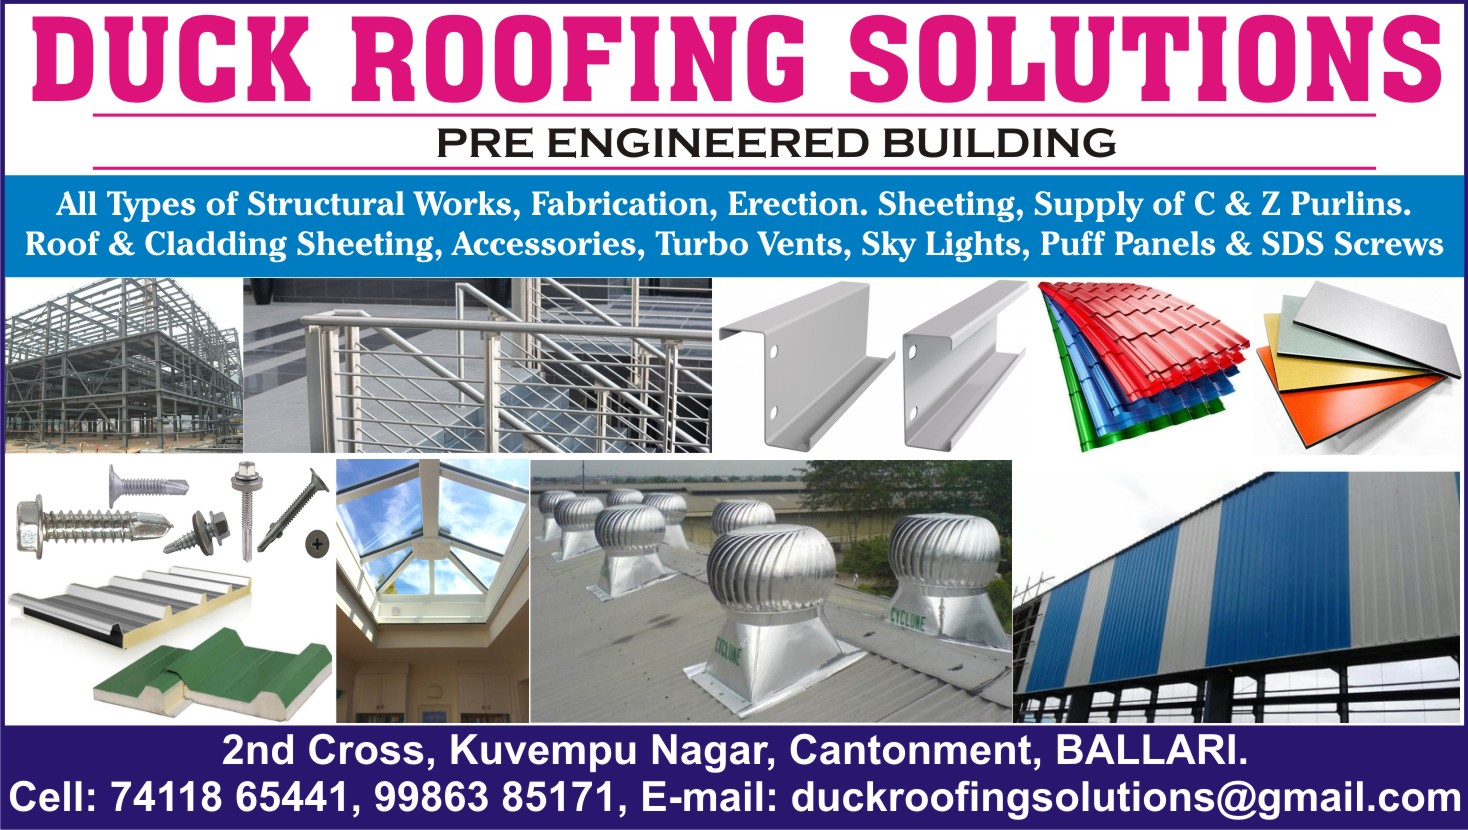 DUCK ROOFING SOLUTIONS